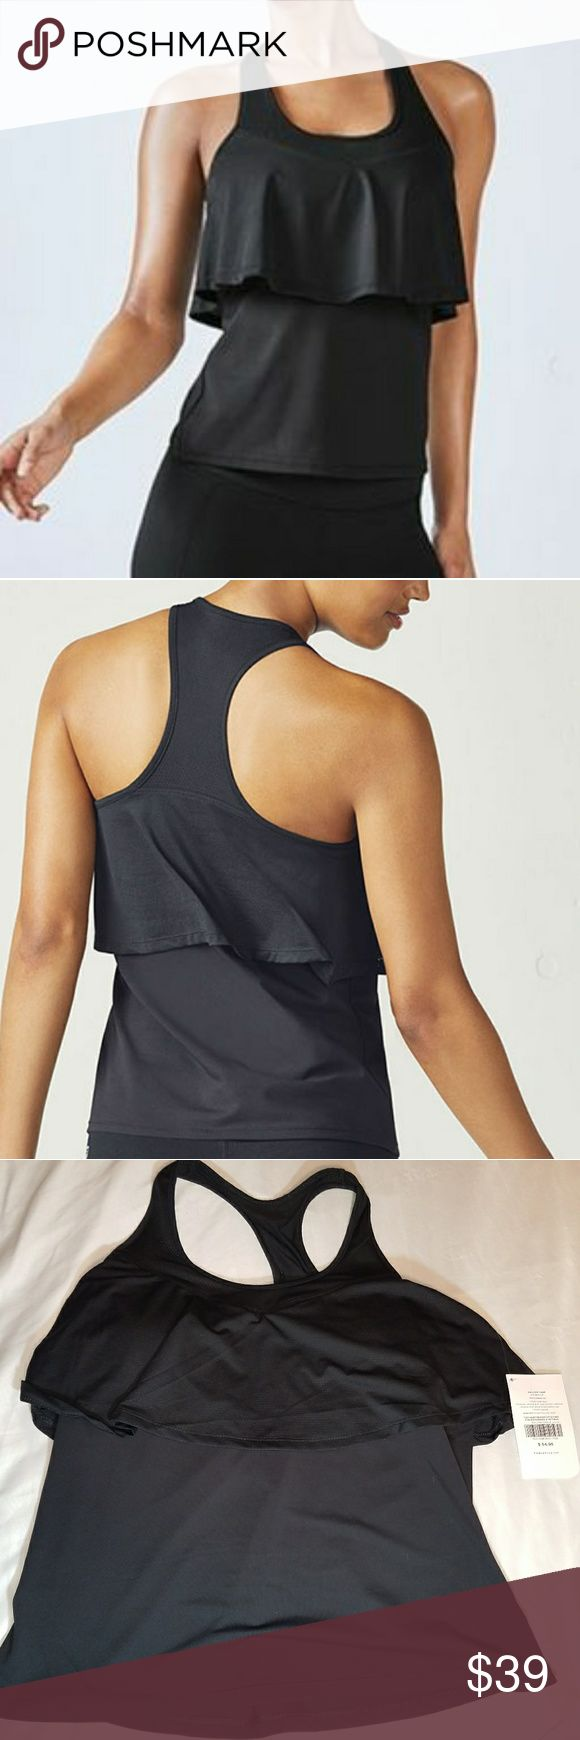 L Fabletics Ashlynn Performance Tank in Black This might be my favorite Fabletics Tank they've ever put out. It looks feminine and delicate, but the mesh outer layer and moisture wicking inner layer means business. It also features a shelf bra with removable cups, so you can decide how much or how little support you need, depending on if you're doing HIIT, yoga, or just hanging around. True Athleisure perfection. Fabletics Tops Tank Tops